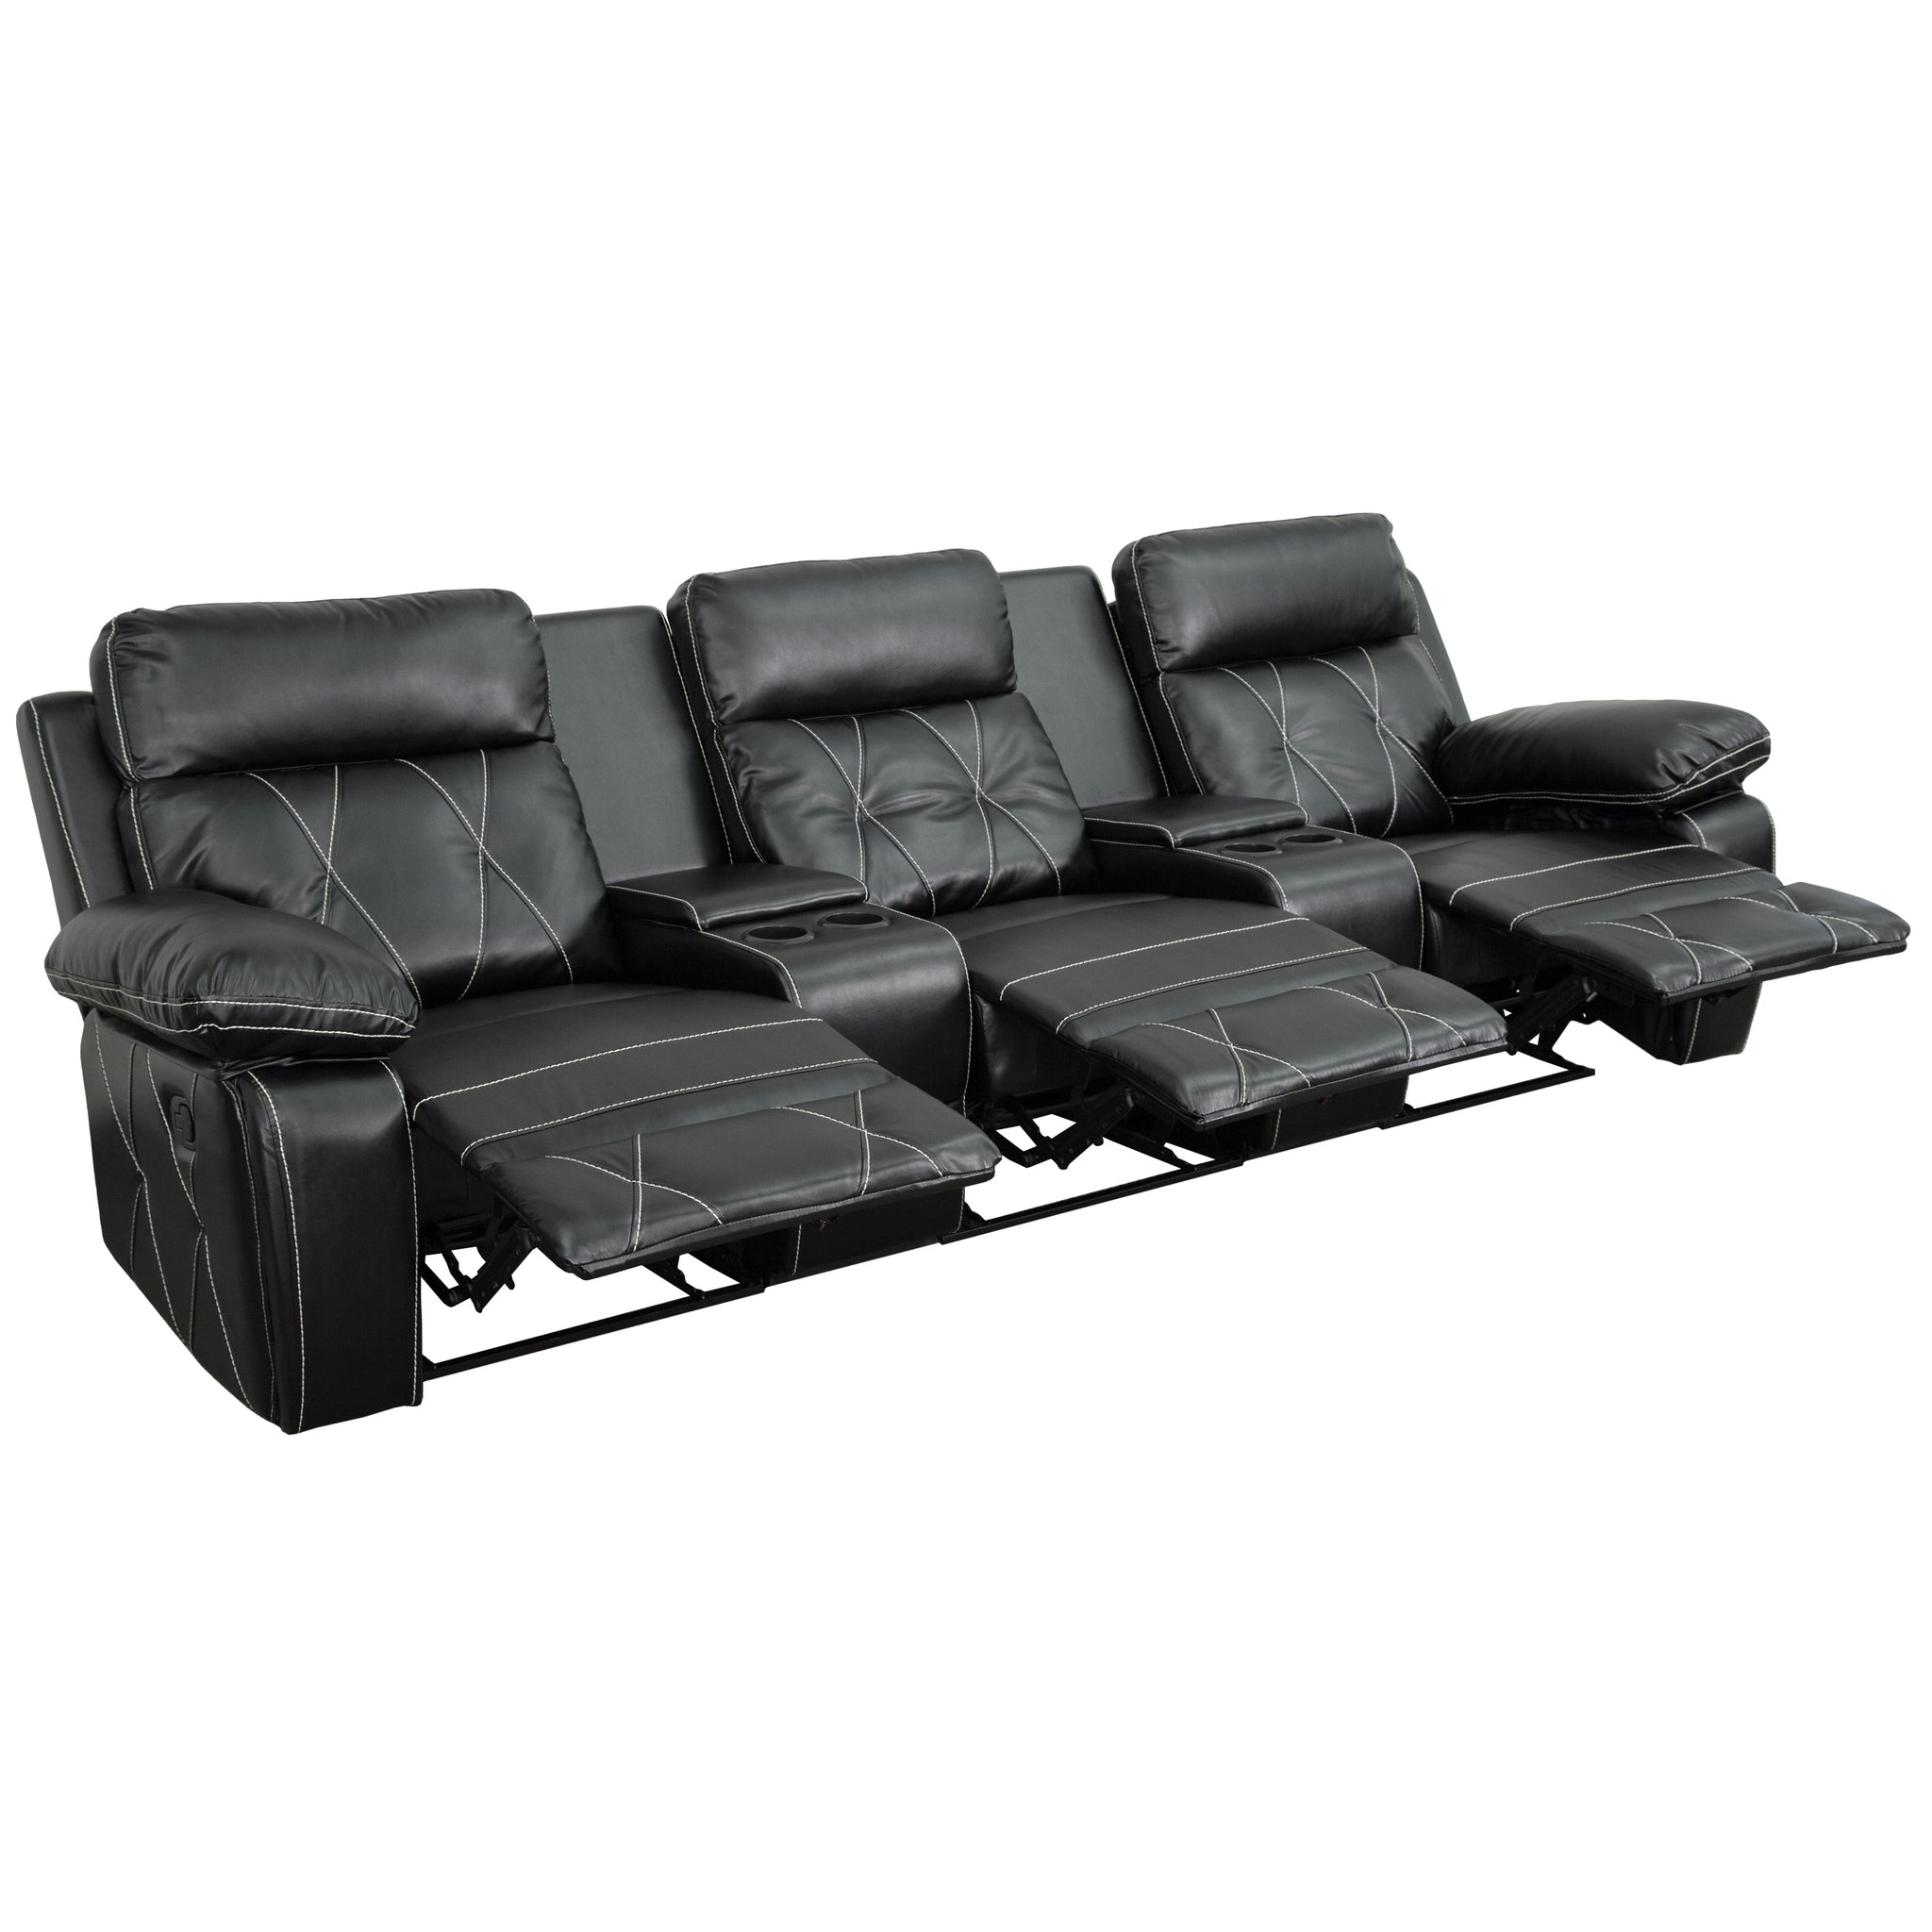 Reel Comfort Series 3-Seat Reclining Leather Theater Seating Unit with Straight Cup Holders: Black